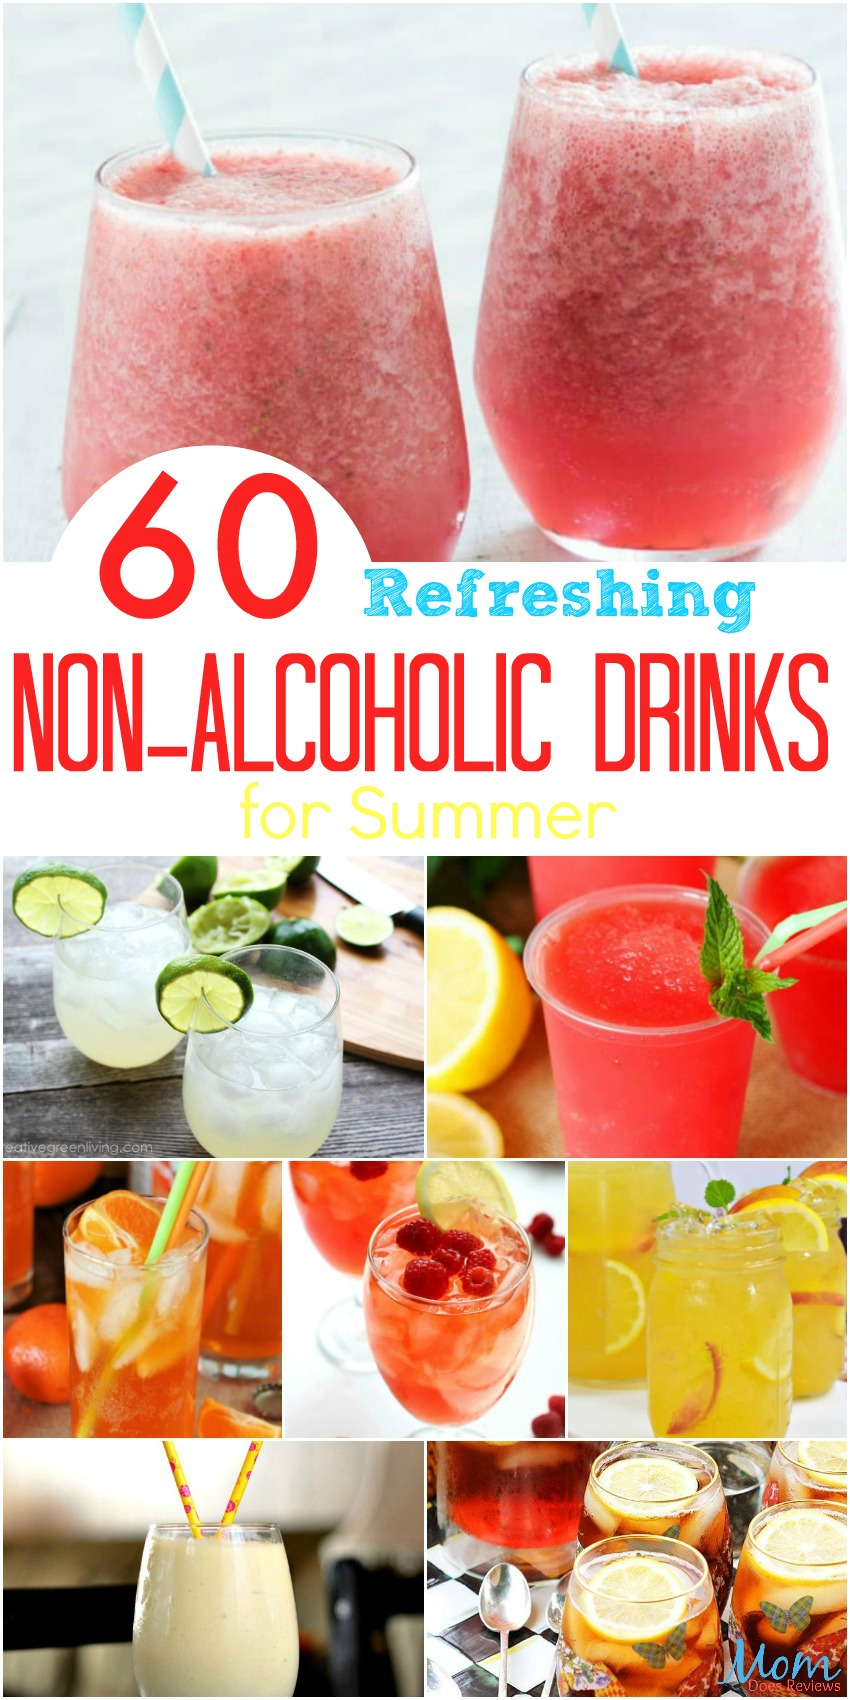 60 Refreshing Non-Alcoholic Drinks for Summer #drinks #summer #frozendrinks #virgindrinks